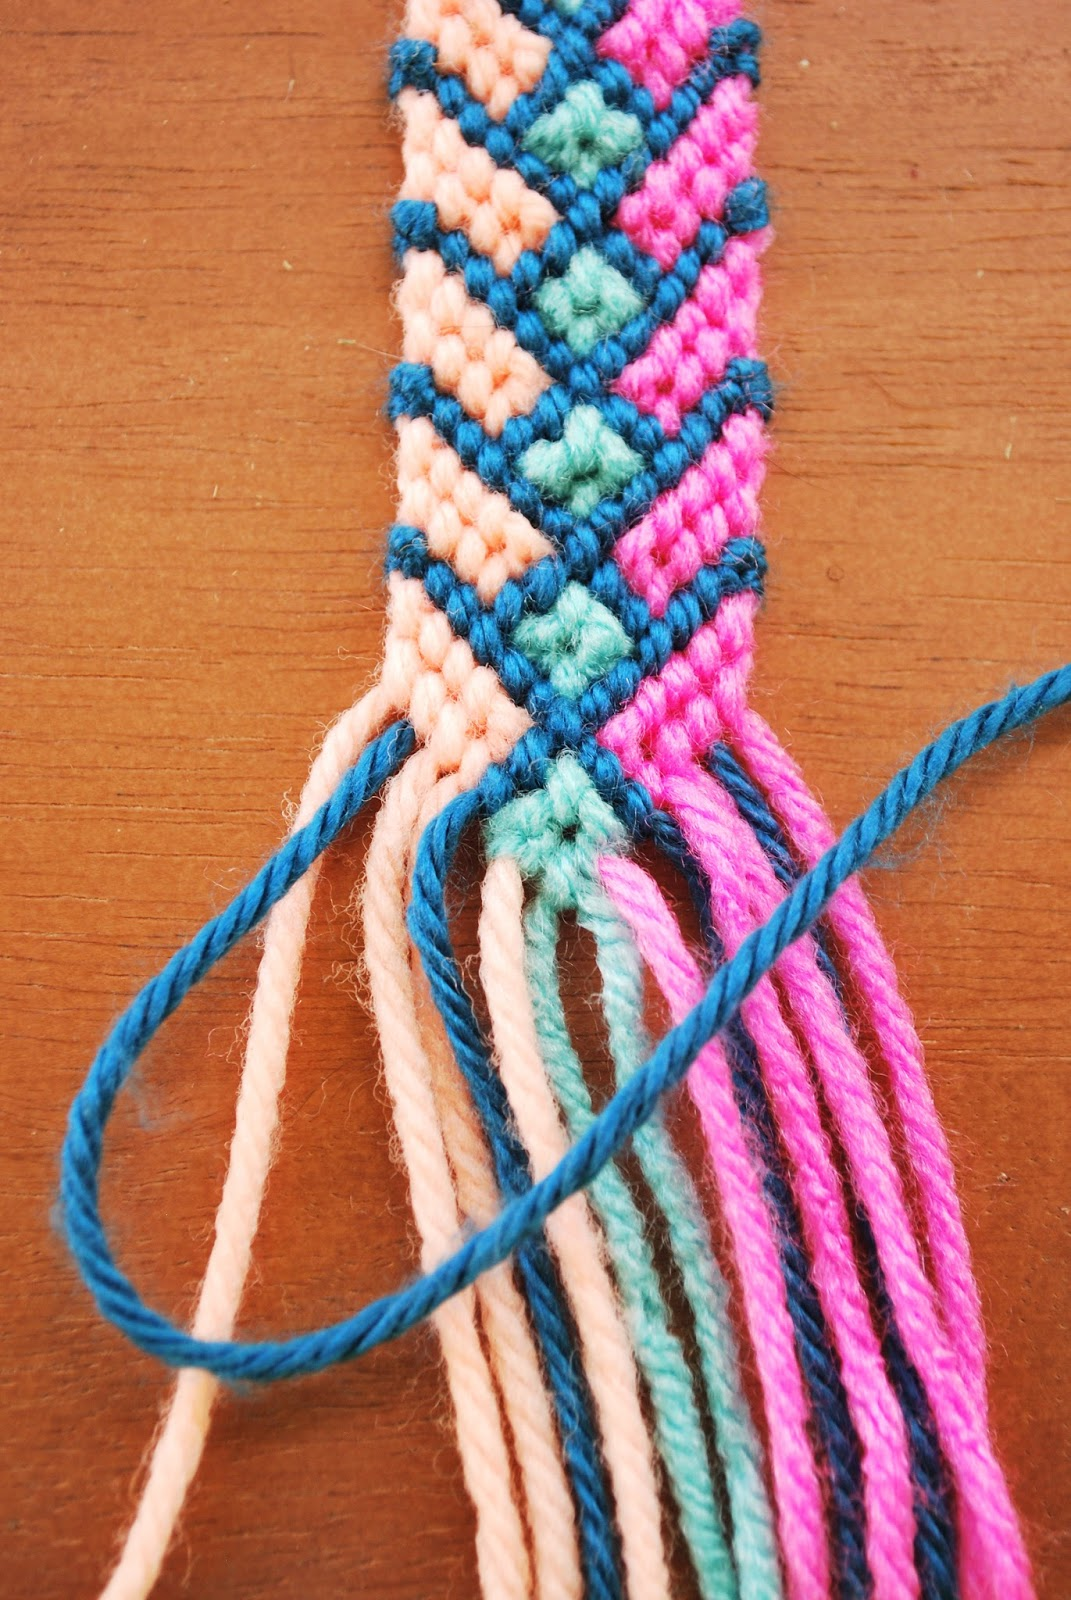 Then With The Light Blue String On Left Tie A Forward Knot Other Taking That Is Second From